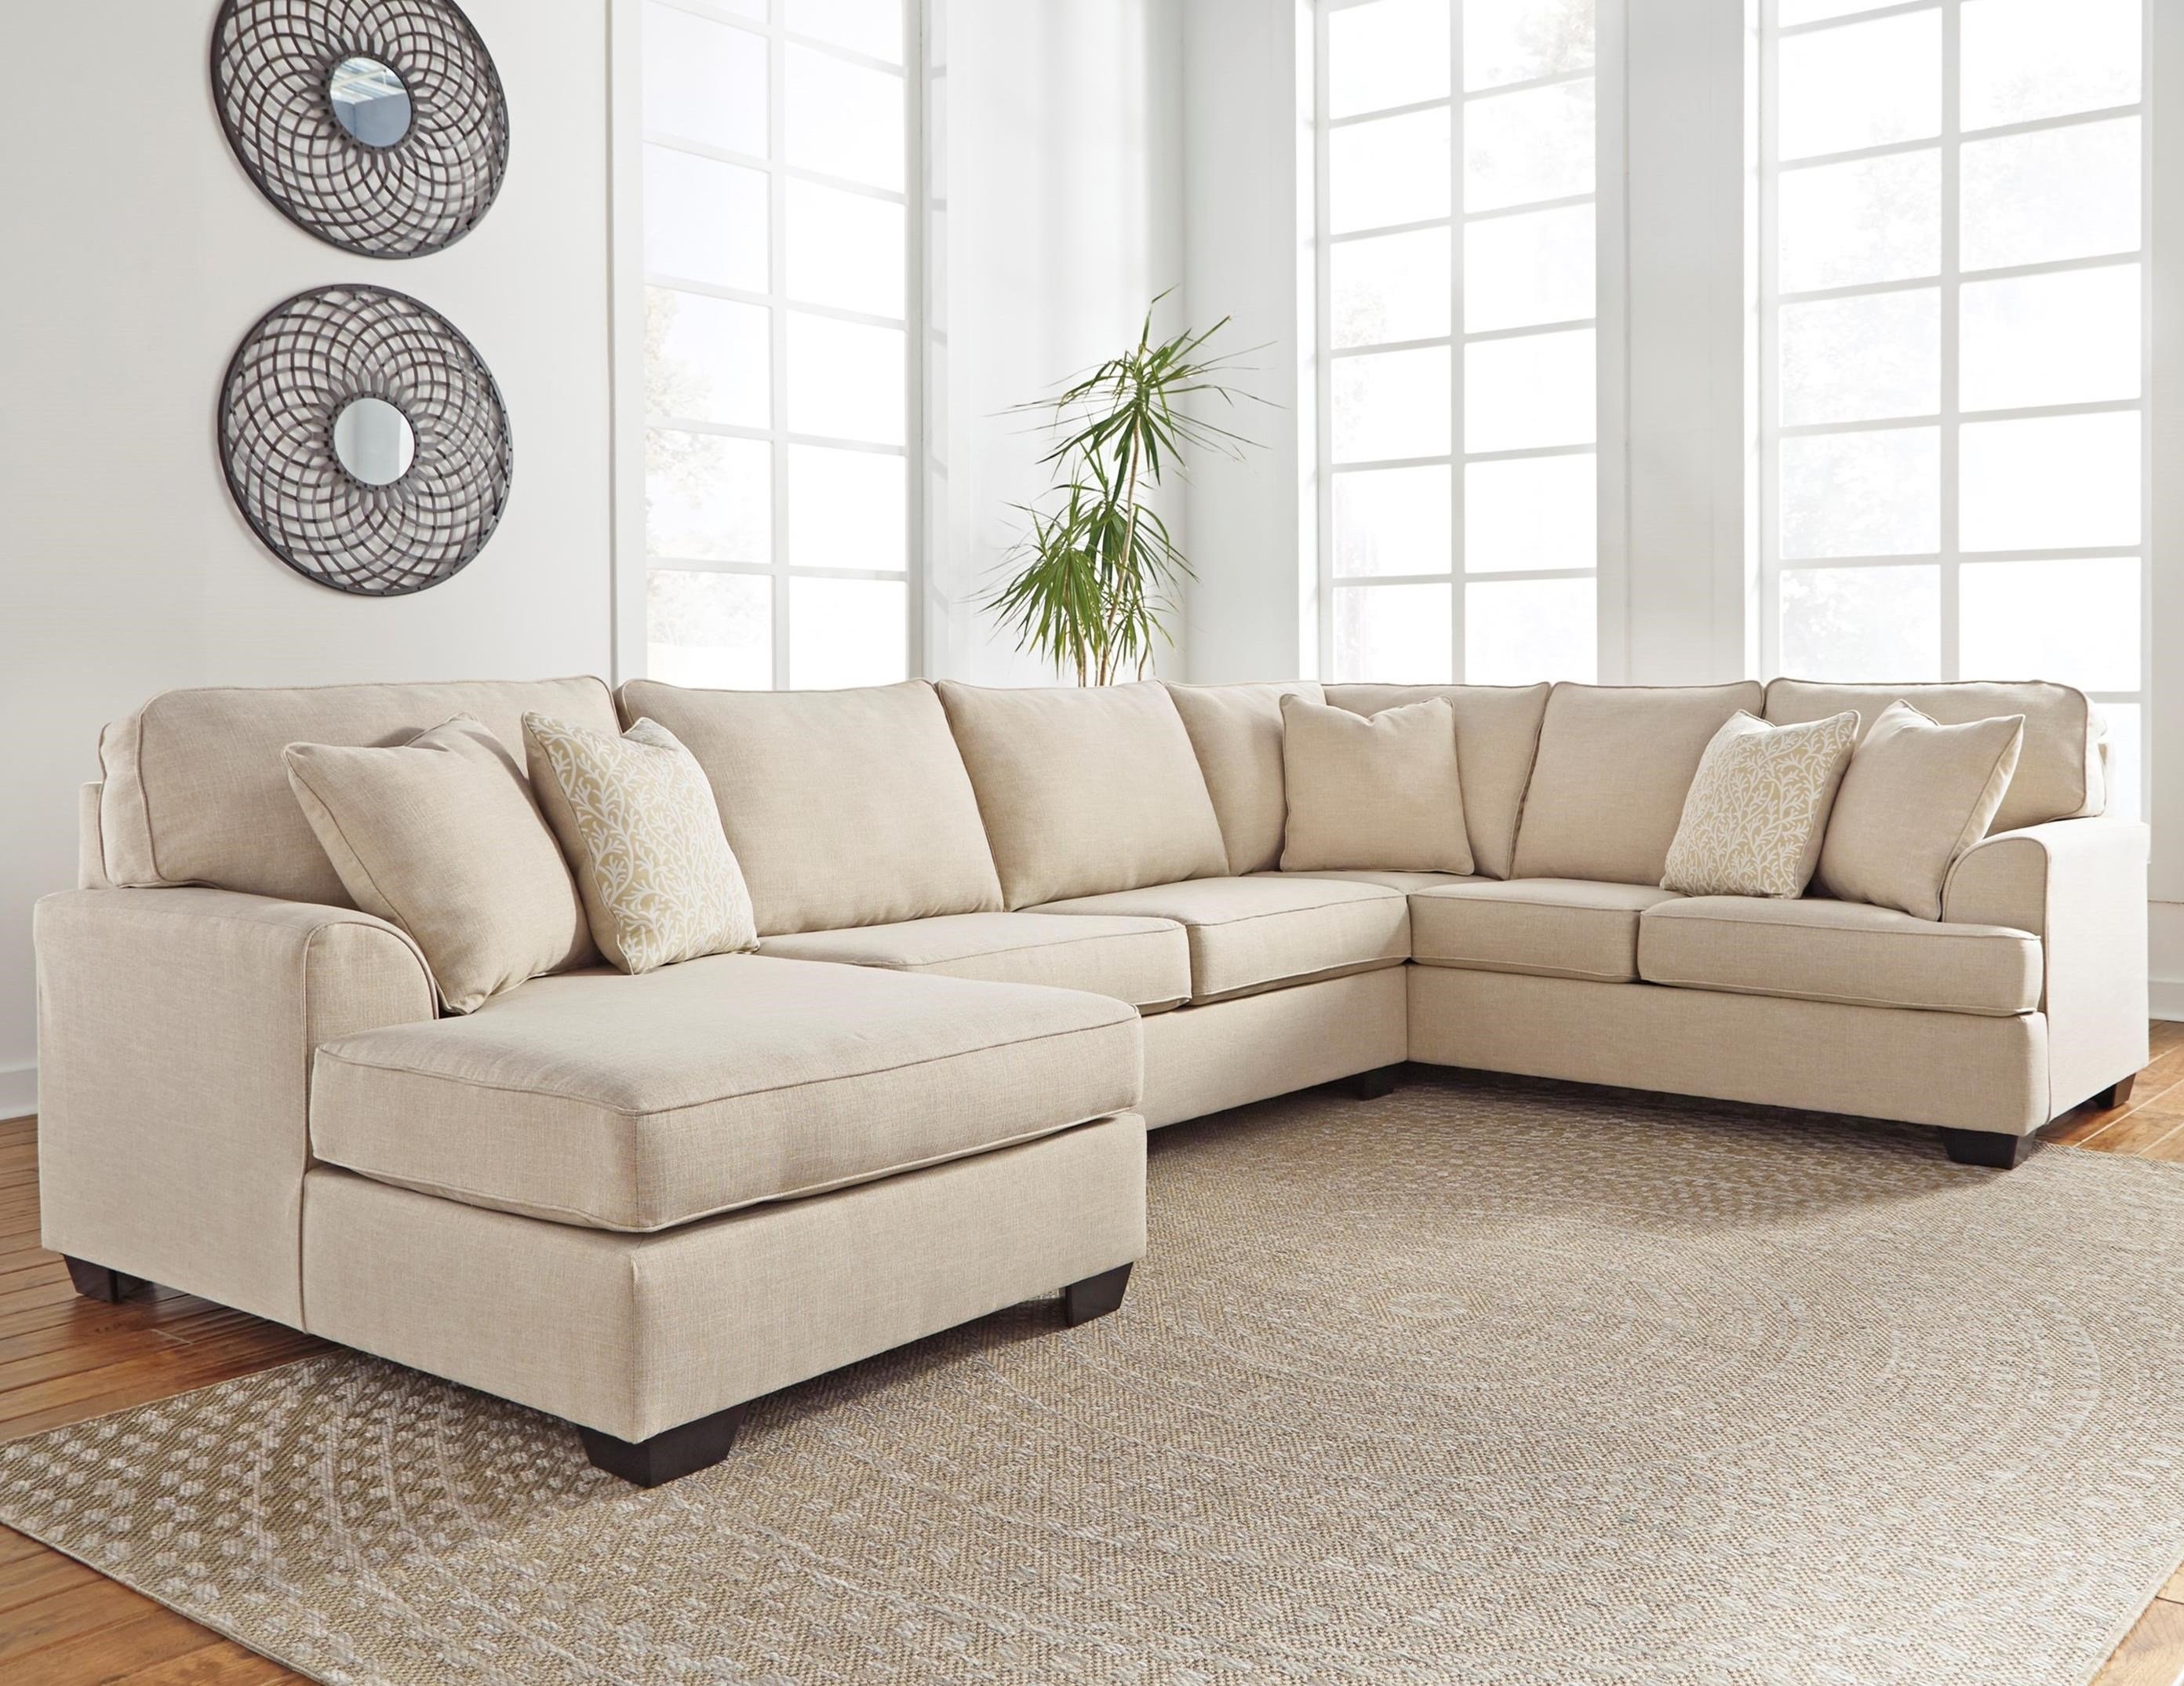 Benchcraft Brioni Nuvella Sectional with Chaise - Item Number: 6230516+34+67